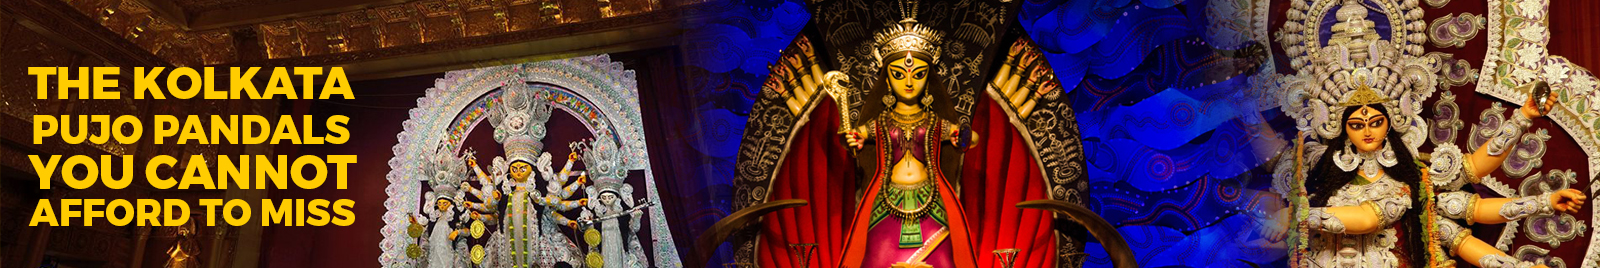 The Kolkata Pujo Pandals you cannot afford to miss